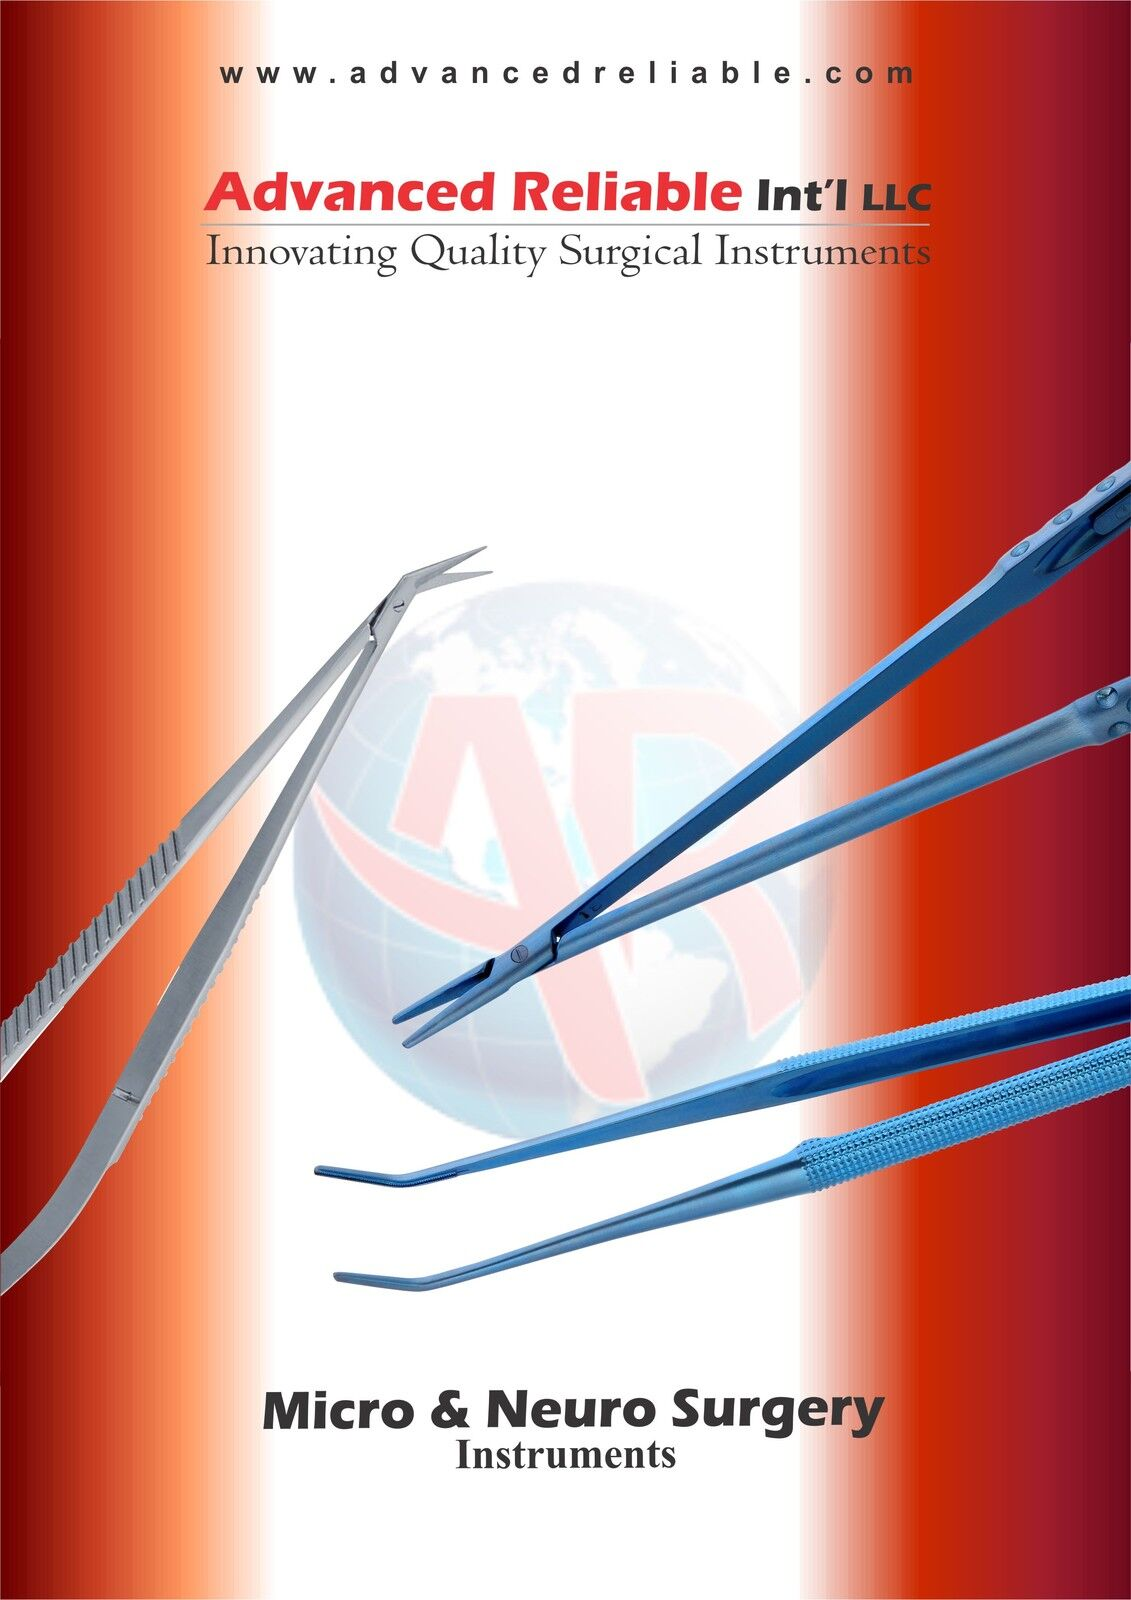 Quality Surgical Instruments